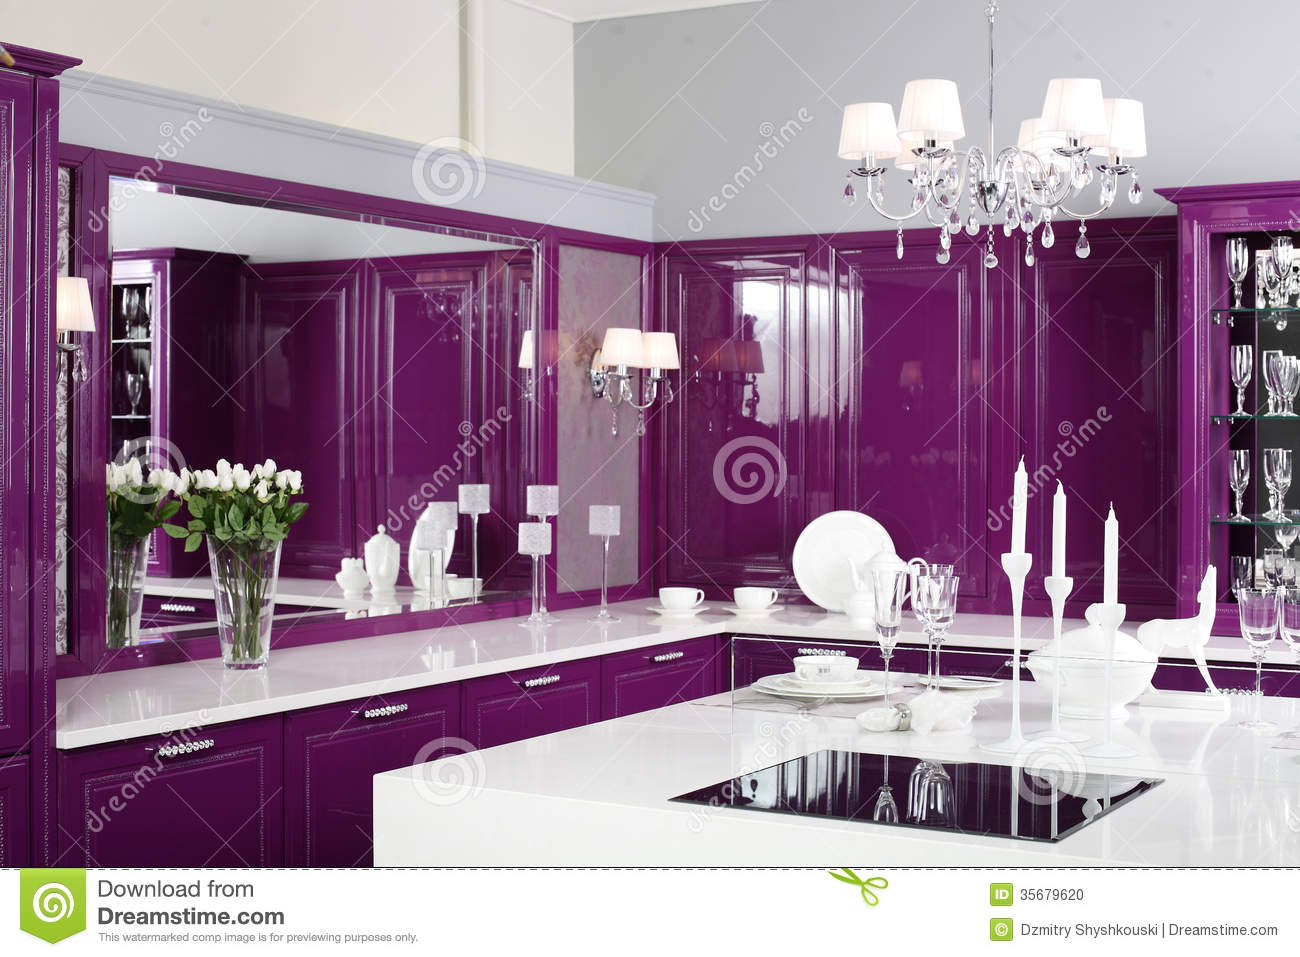 Modern purple kitchen with stylish furniture stock photo for Stylish furniture